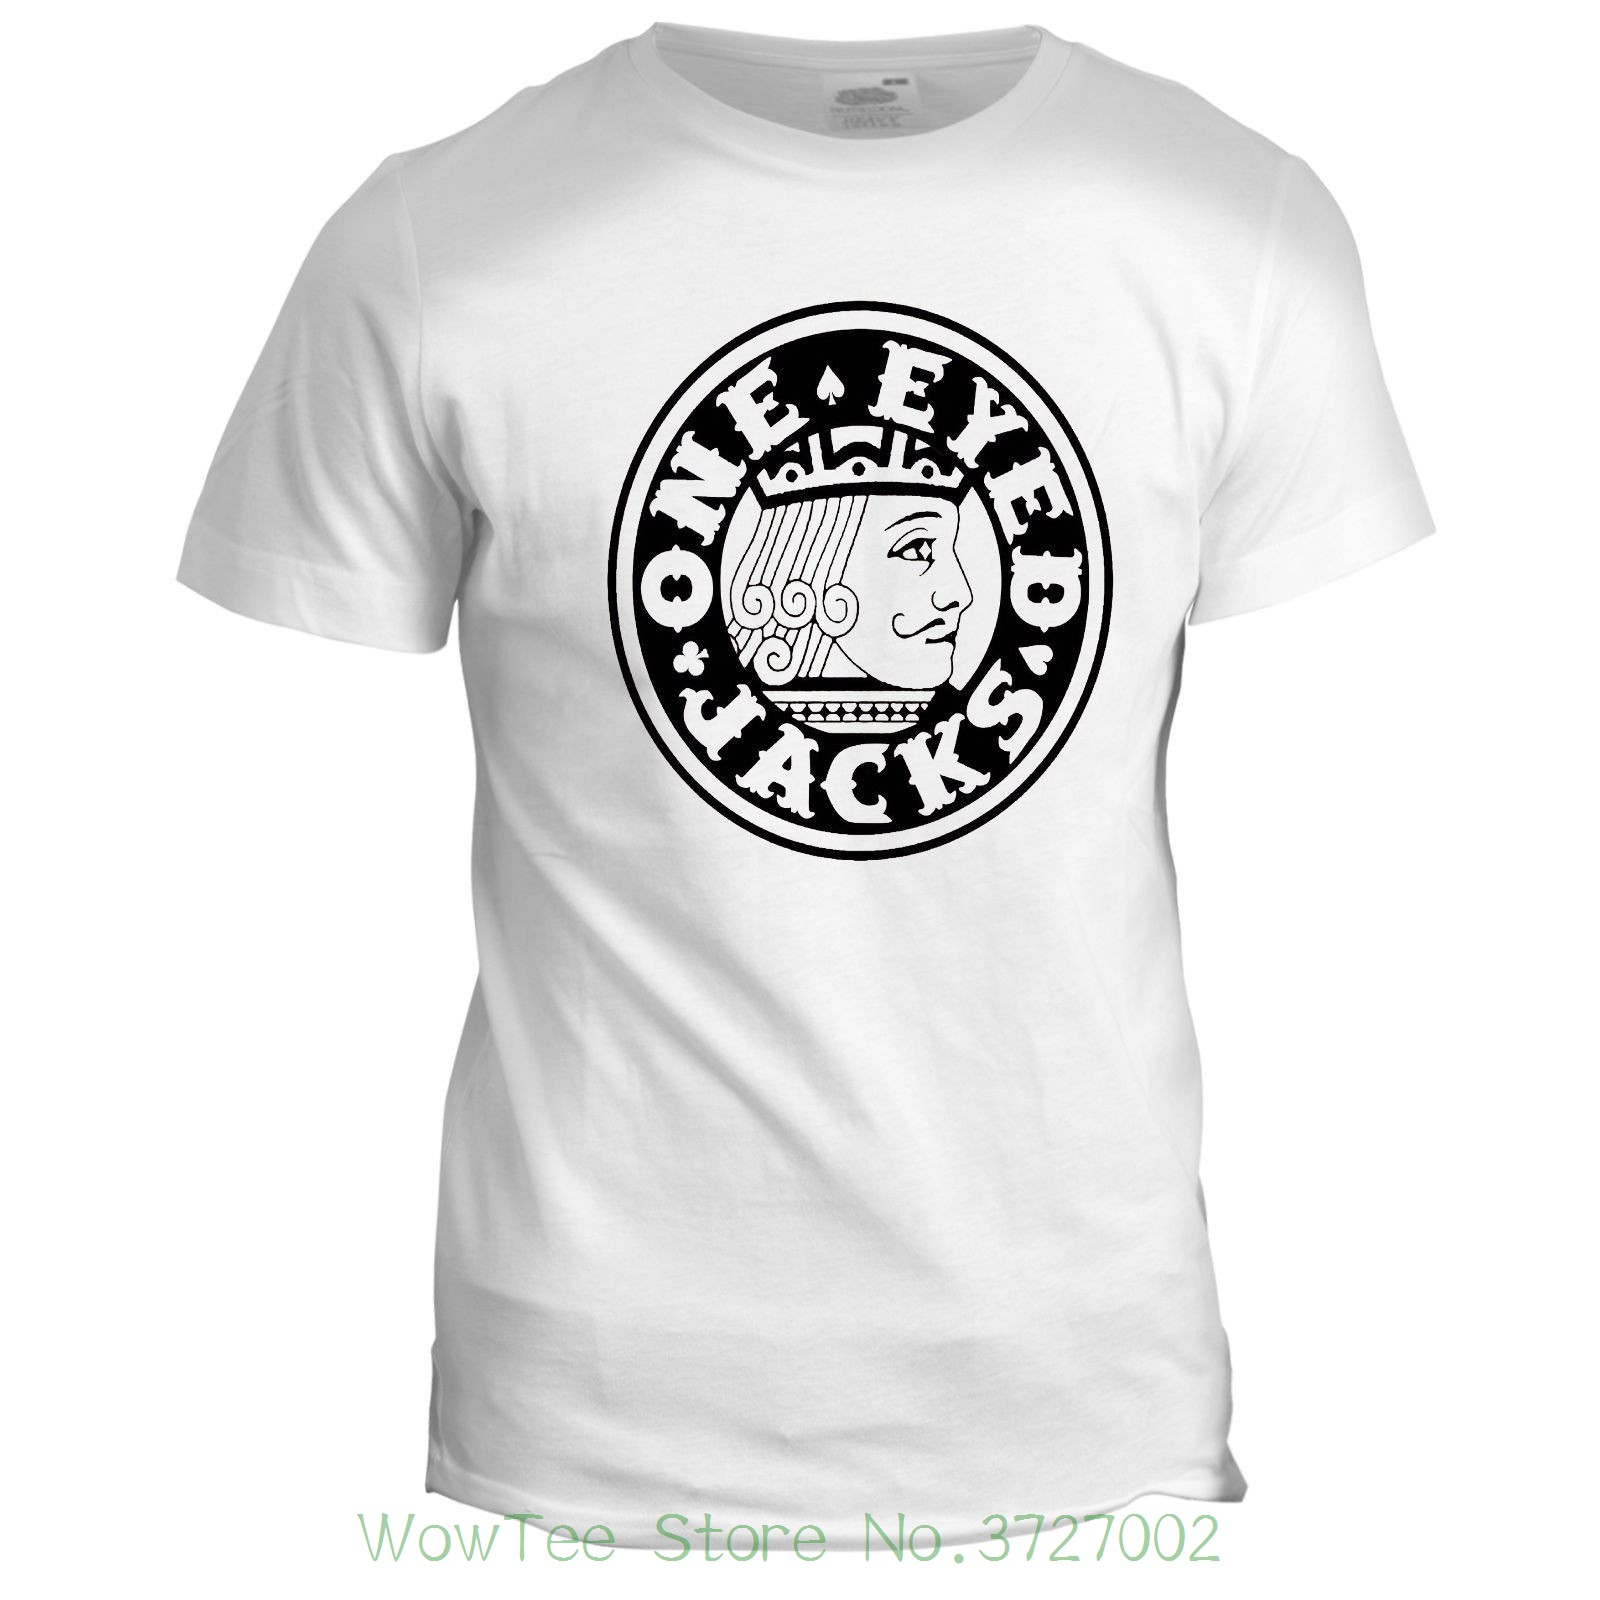 One Eyed Jacks Inspired Twin Peaks Black Lodge Rr Diner Dad Father T Shirt Men Summer Style